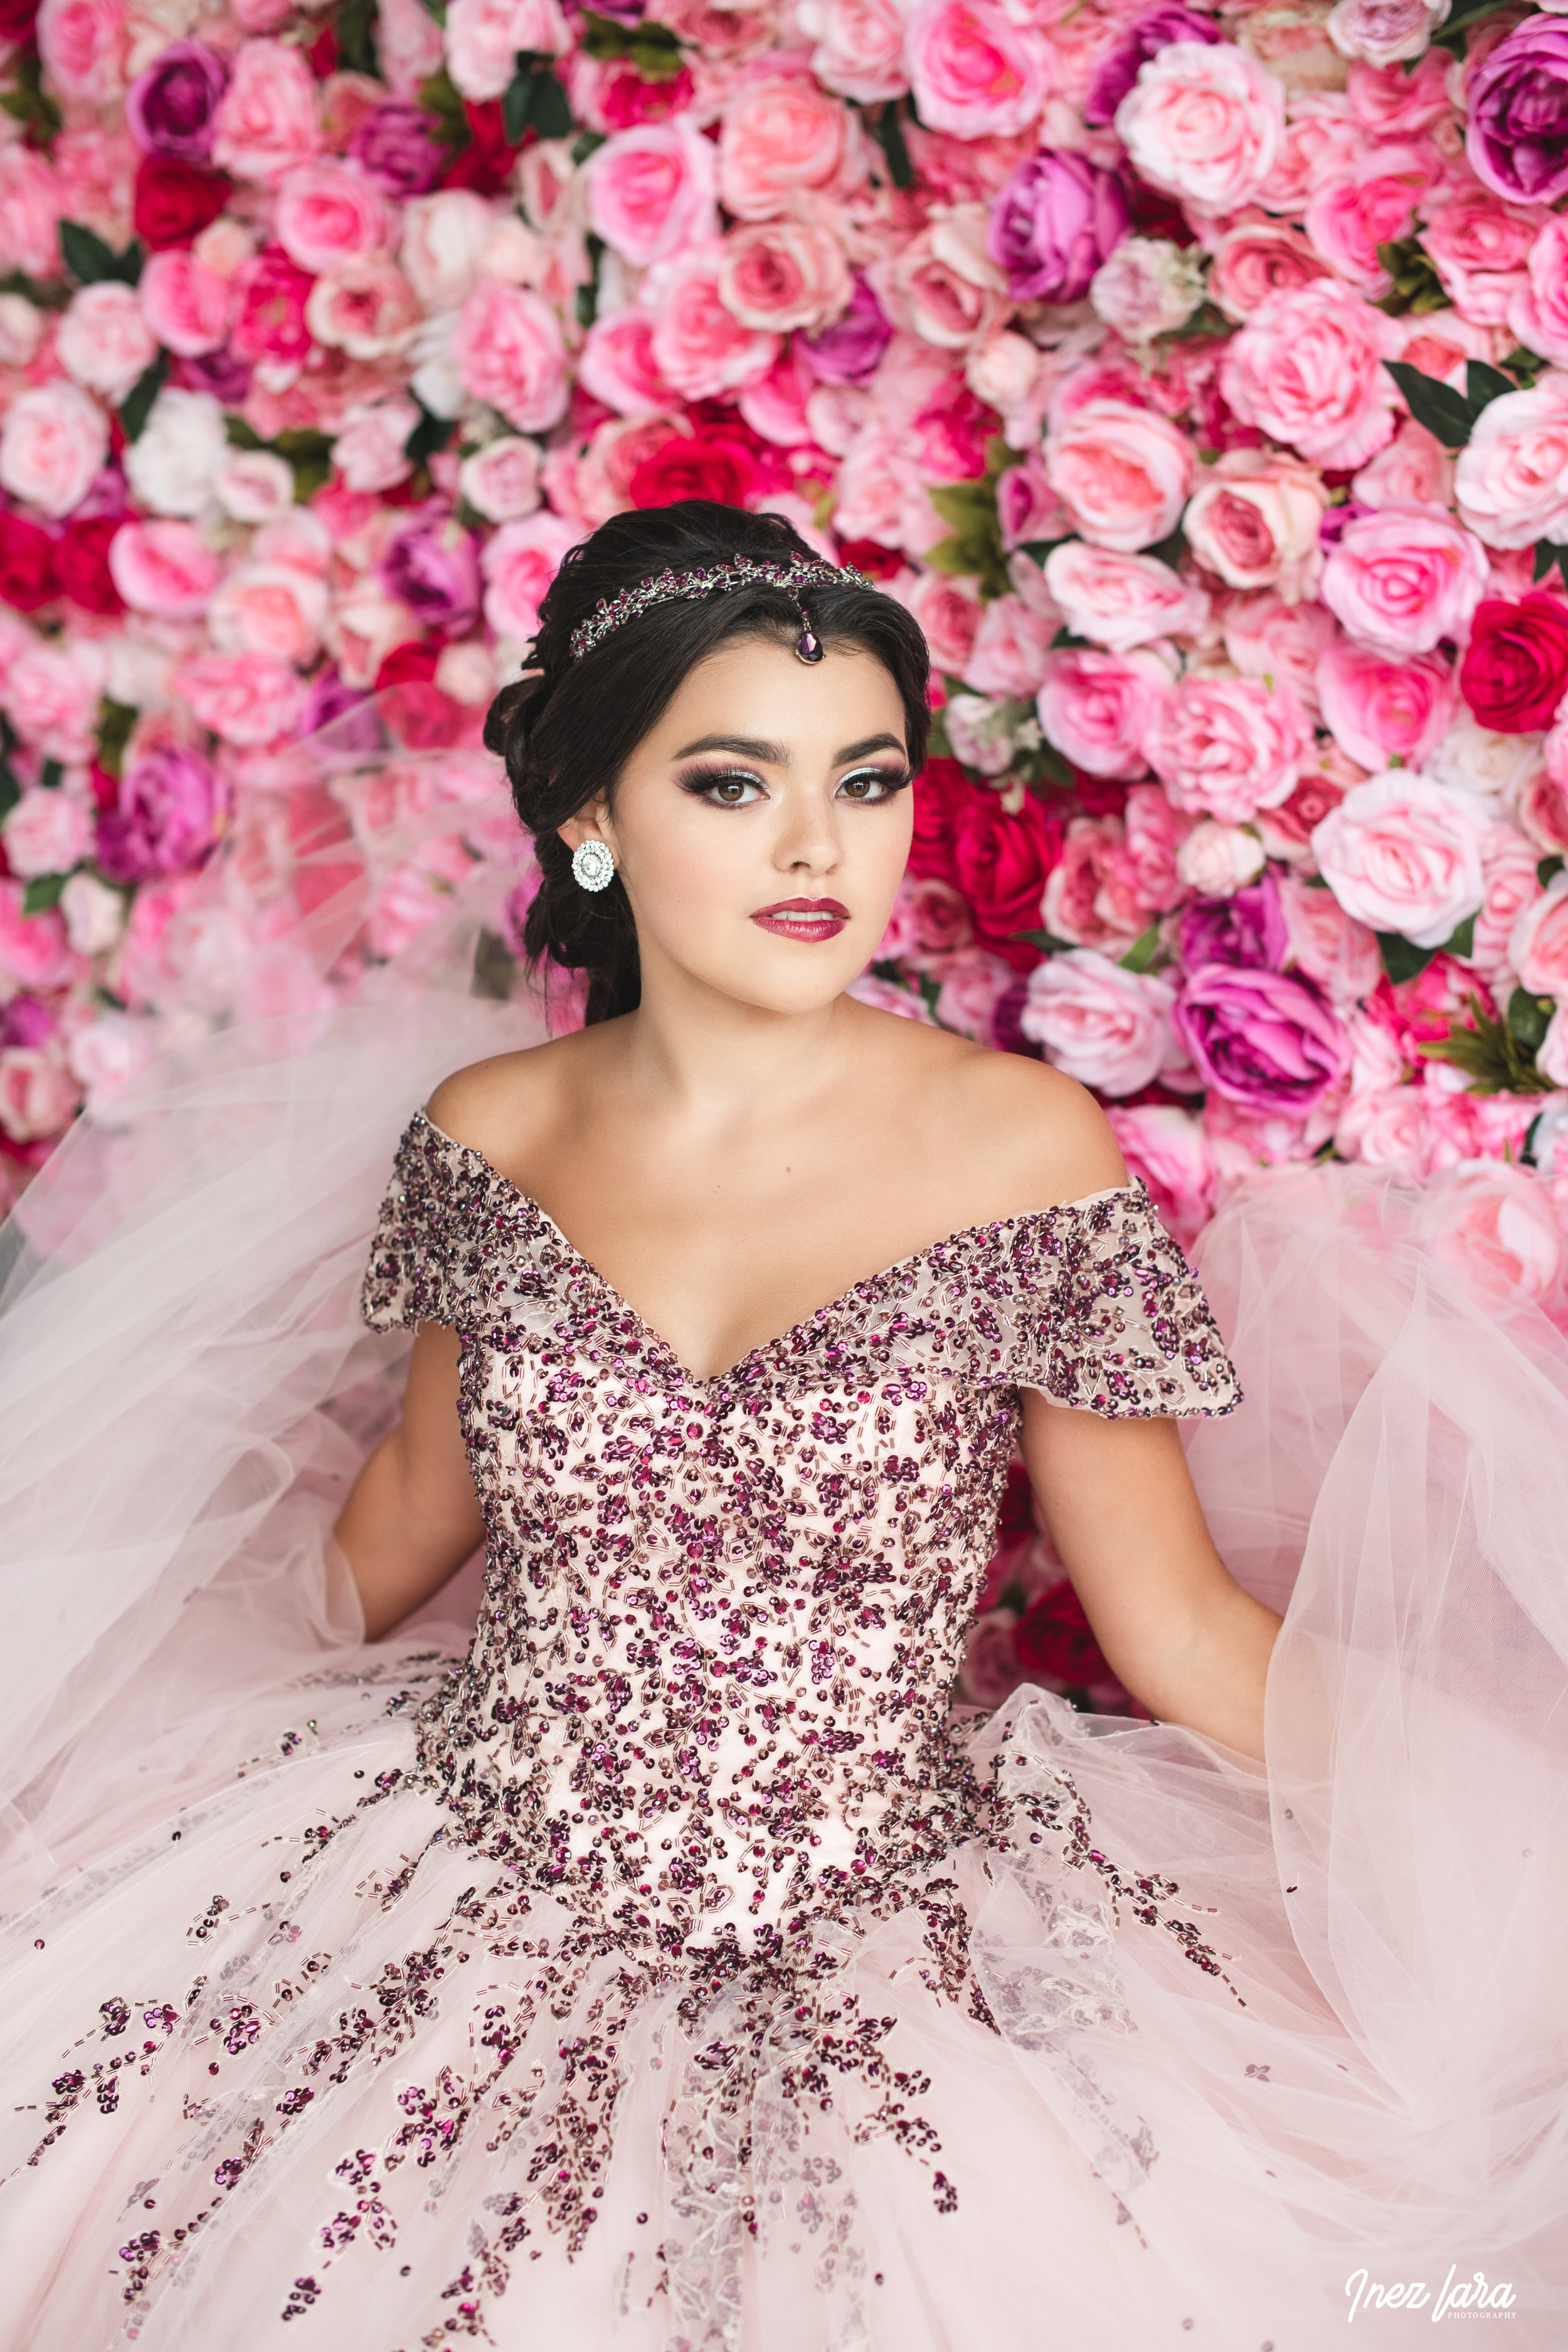 houston wedding quince sweet 16 batmitzvah mar mitvahquinceanera best photographer katy texas engagement Quinceanera Dresses ideas hairstyles themes decorations photography poses cakes photoshoot houston texas best quinceanera photographer